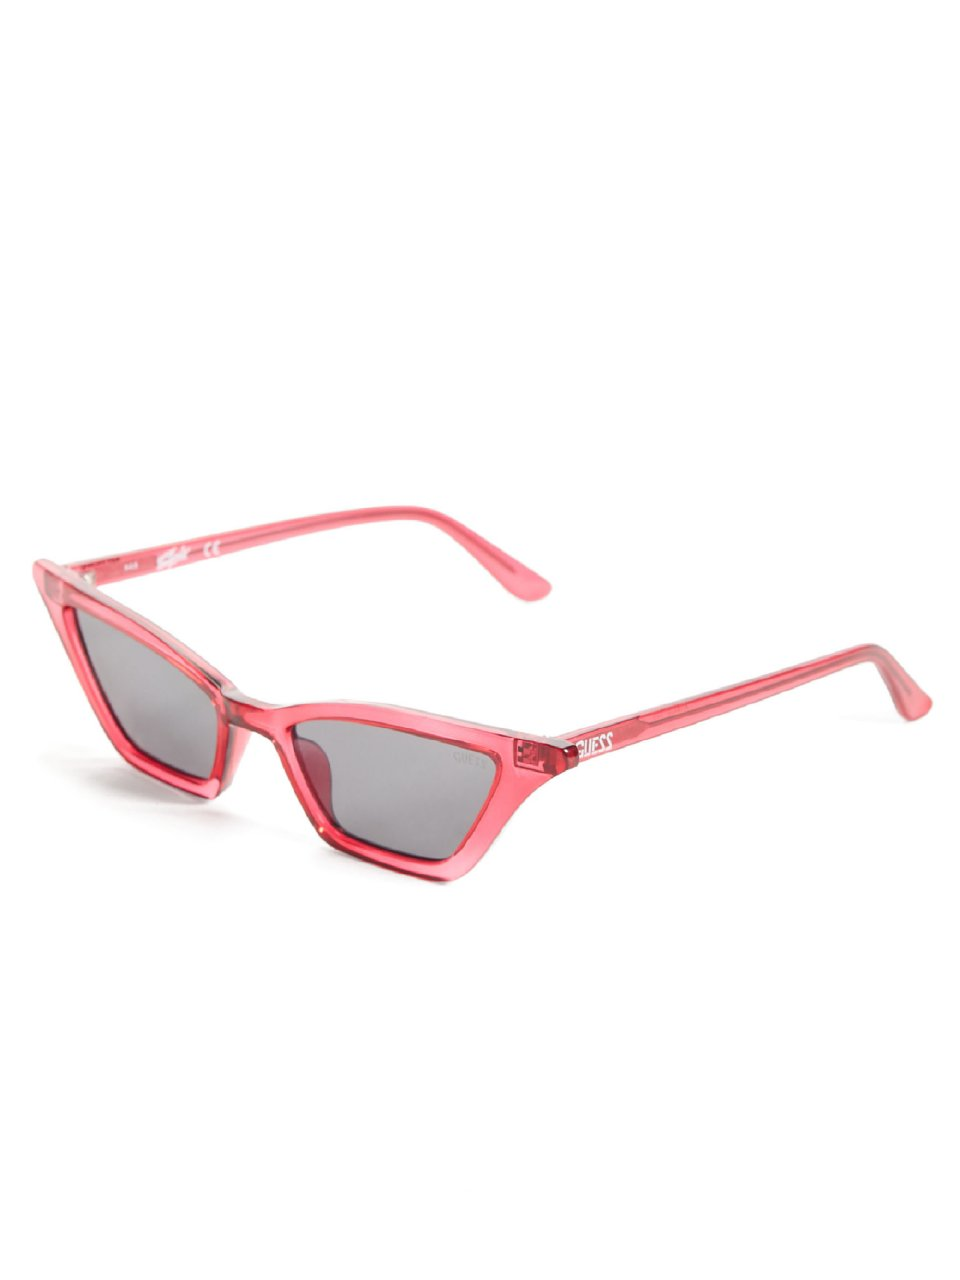 497e49740 GUESS Originals Pointed Cat-Eye Sunglasses in 2019   Products   Cat ...